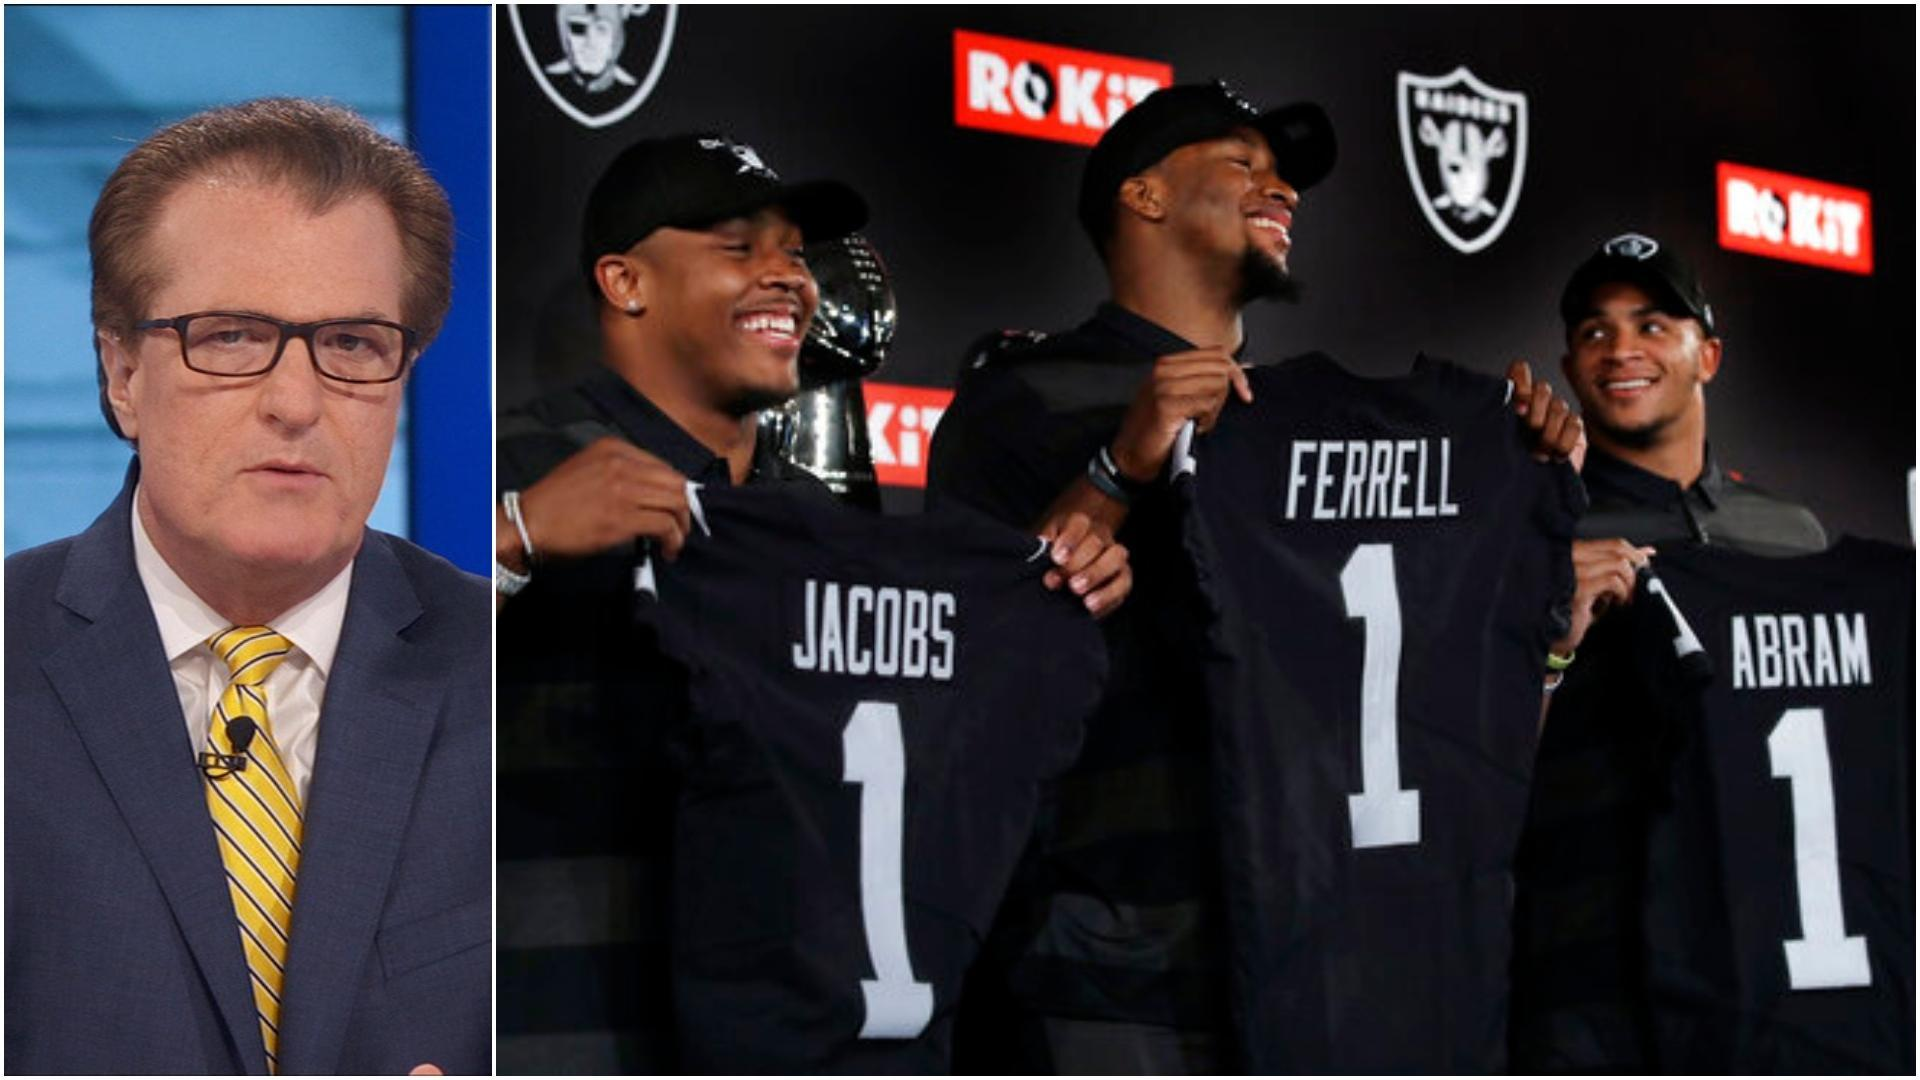 Kiper predicts Raiders will win the AFC West